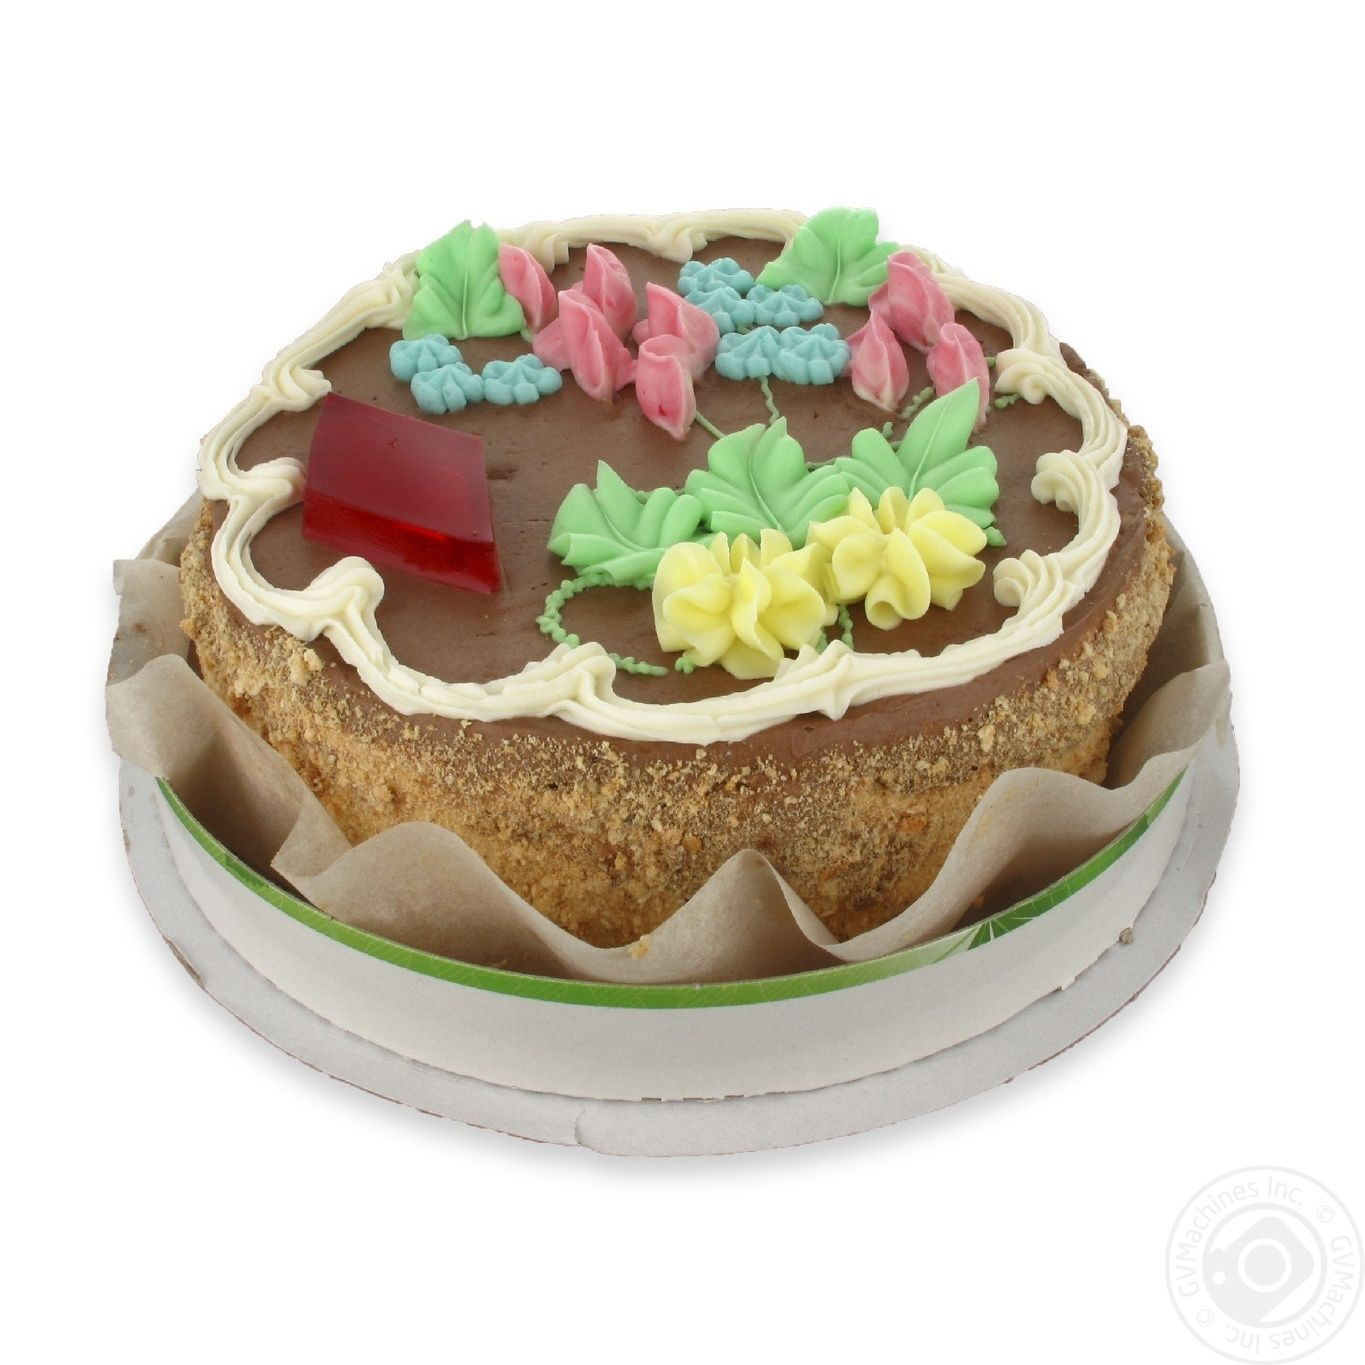 Cake Kyivskyy Peanuts 500g Sweets Pastries And Cakes FOZZY Online Store